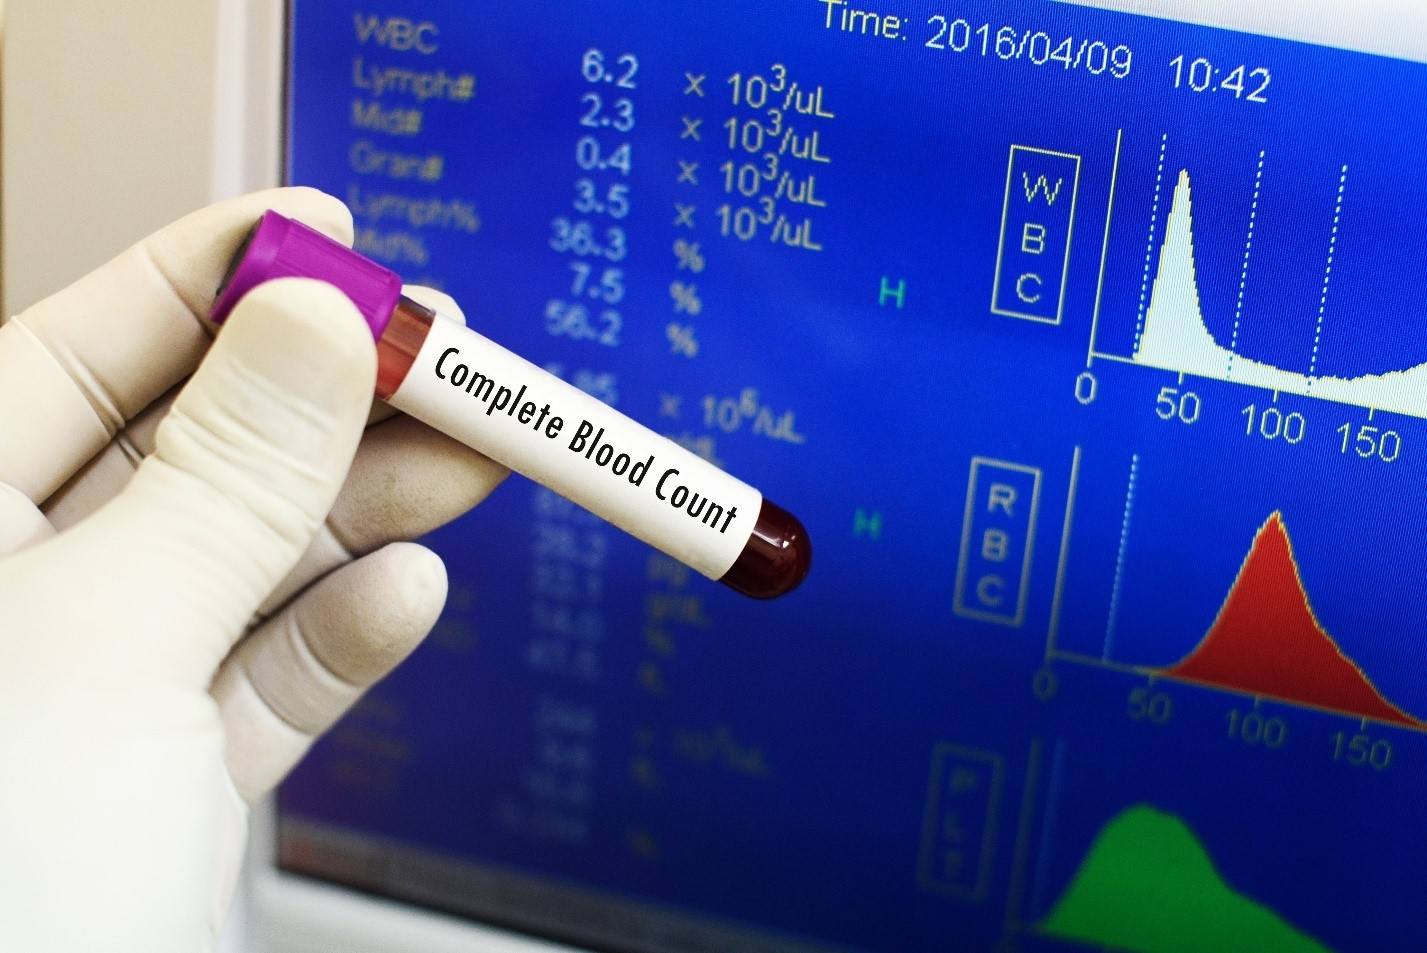 complete-blood-count CBC test ahmedabad